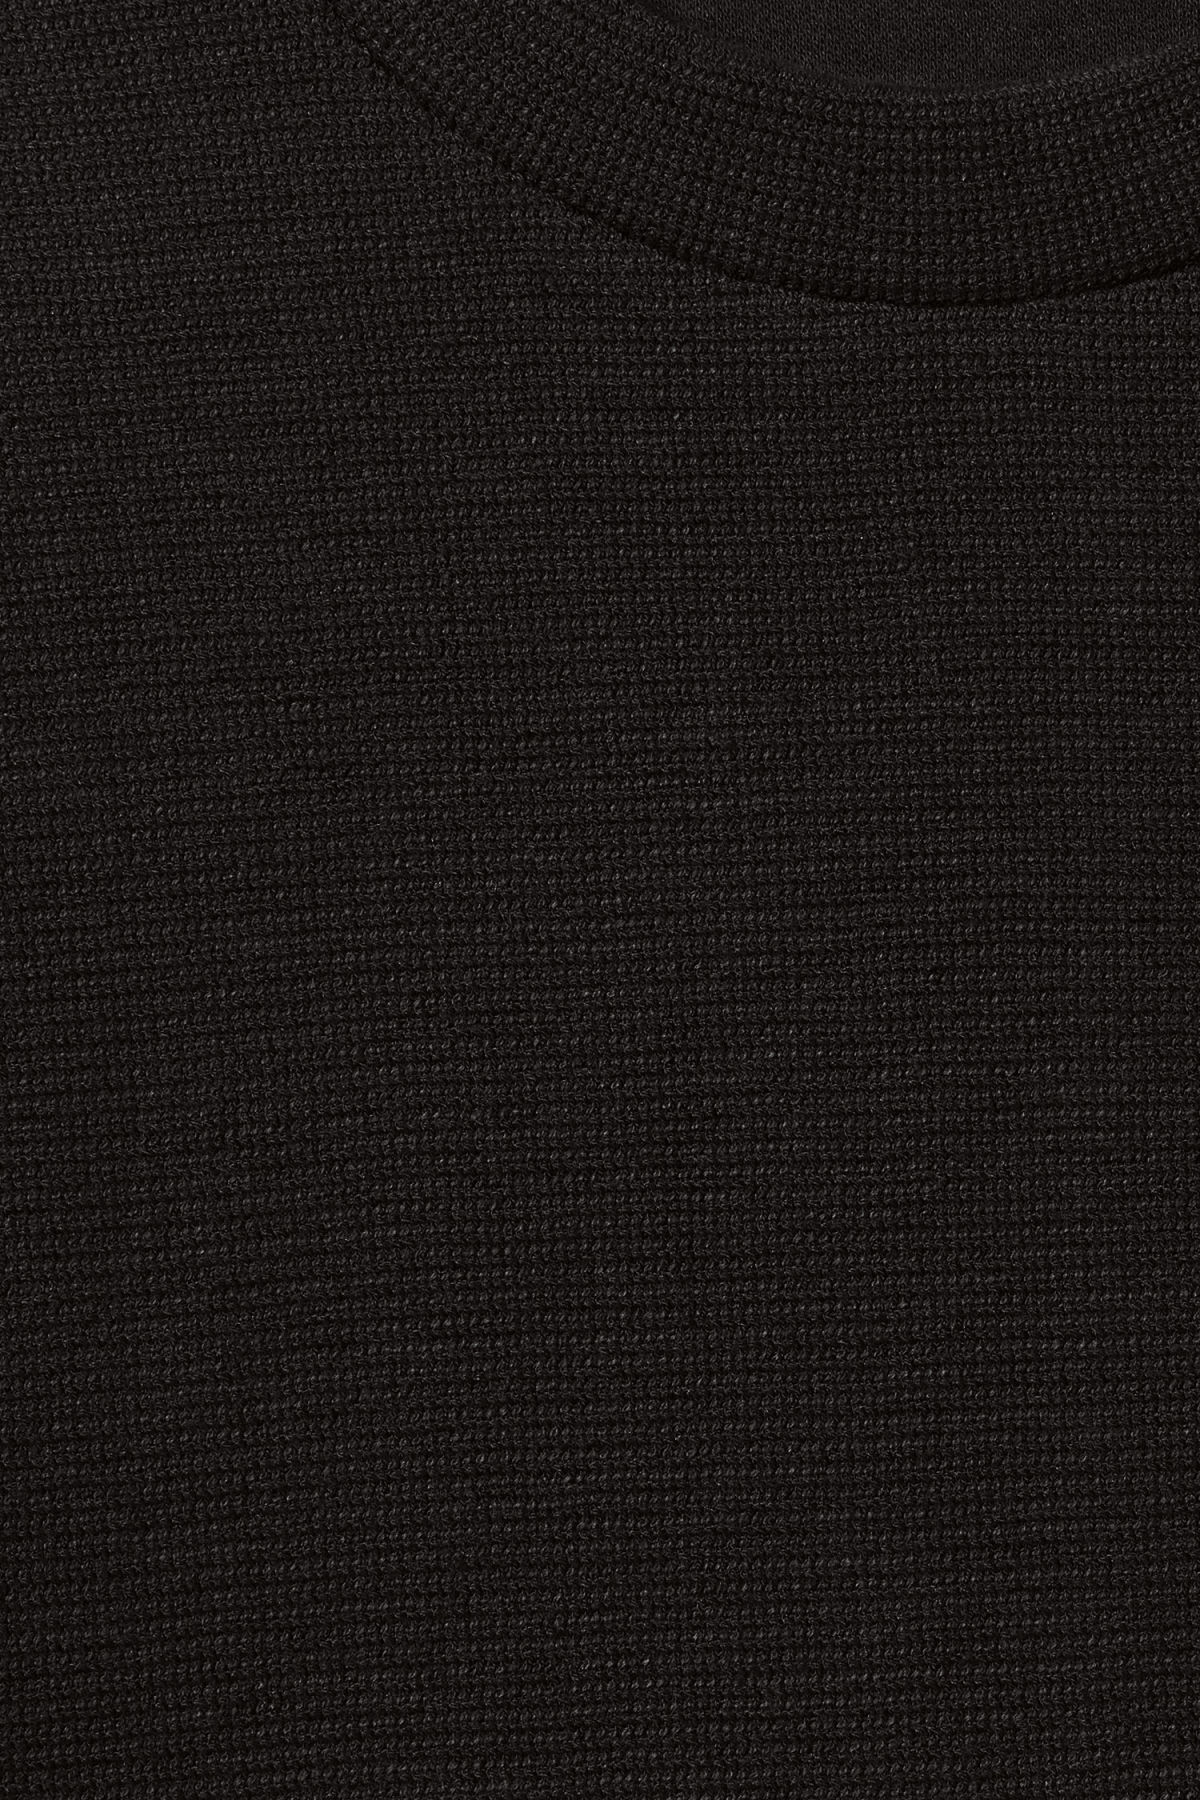 Detailed image of Weekday grand t-shirt in black